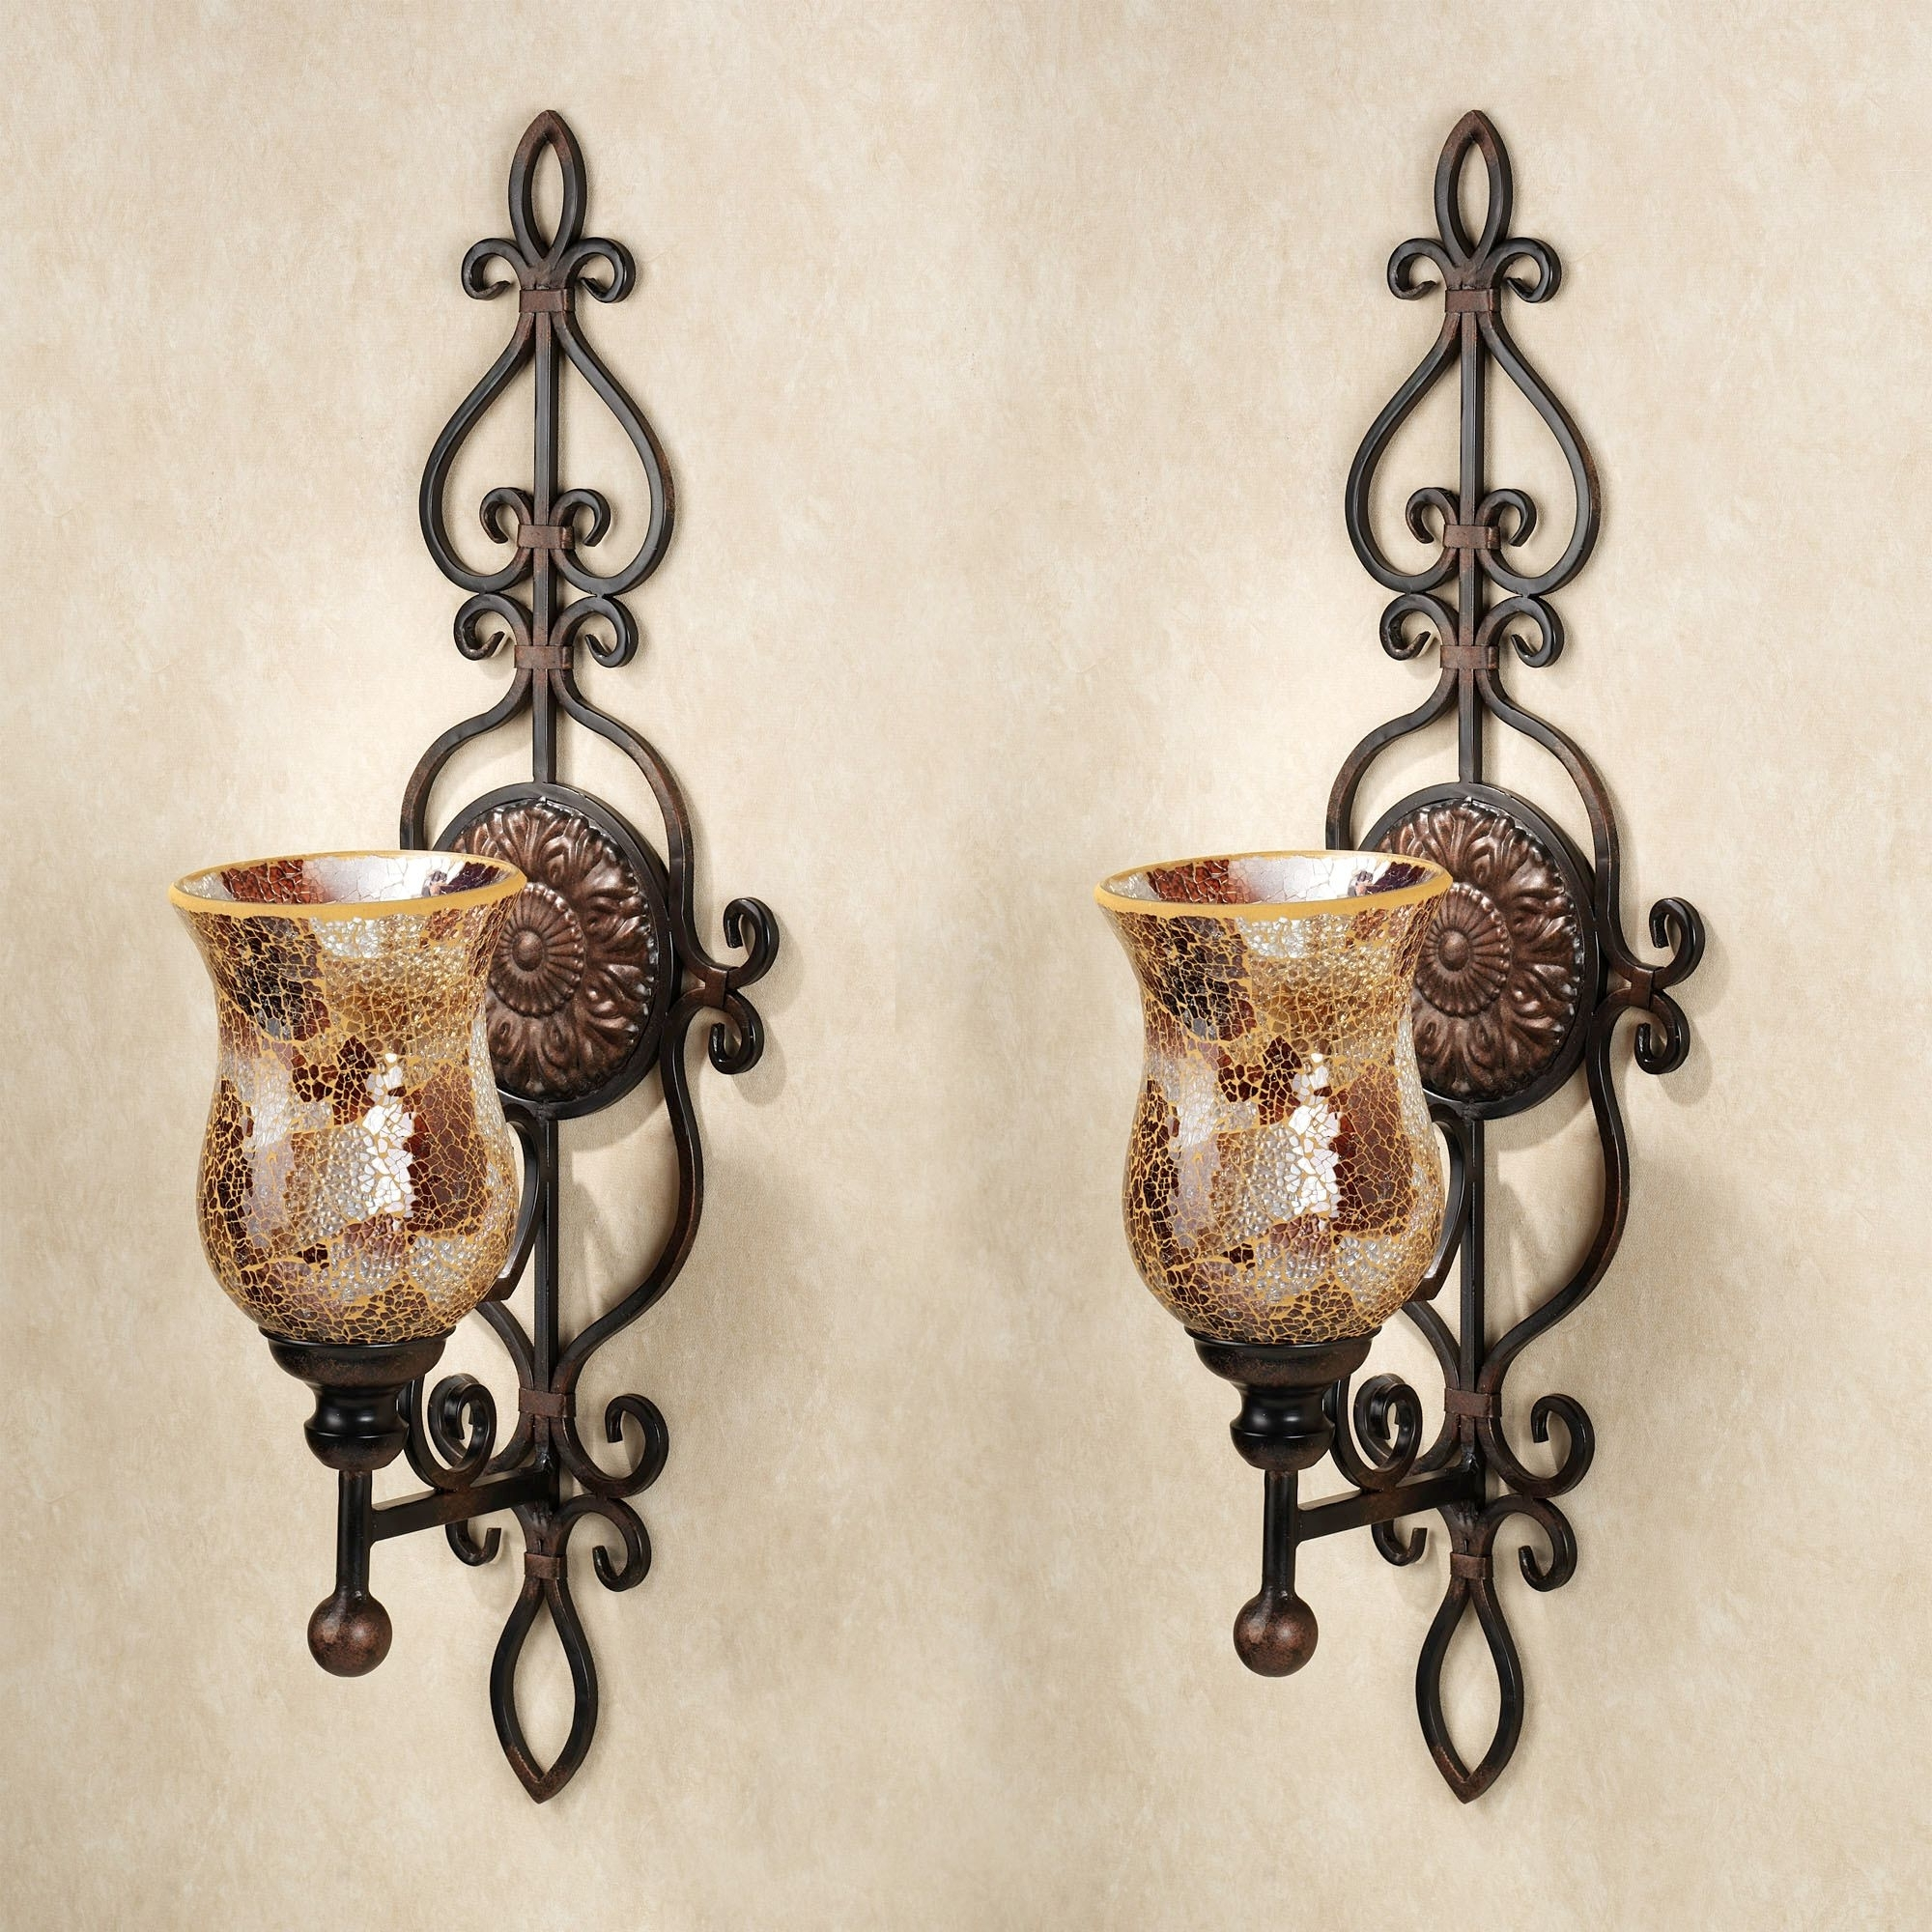 Wall Mounted Candle Chandeliers Within Best And Newest Wall Mounted Candle Chandelier – Musethecollective (View 3 of 20)